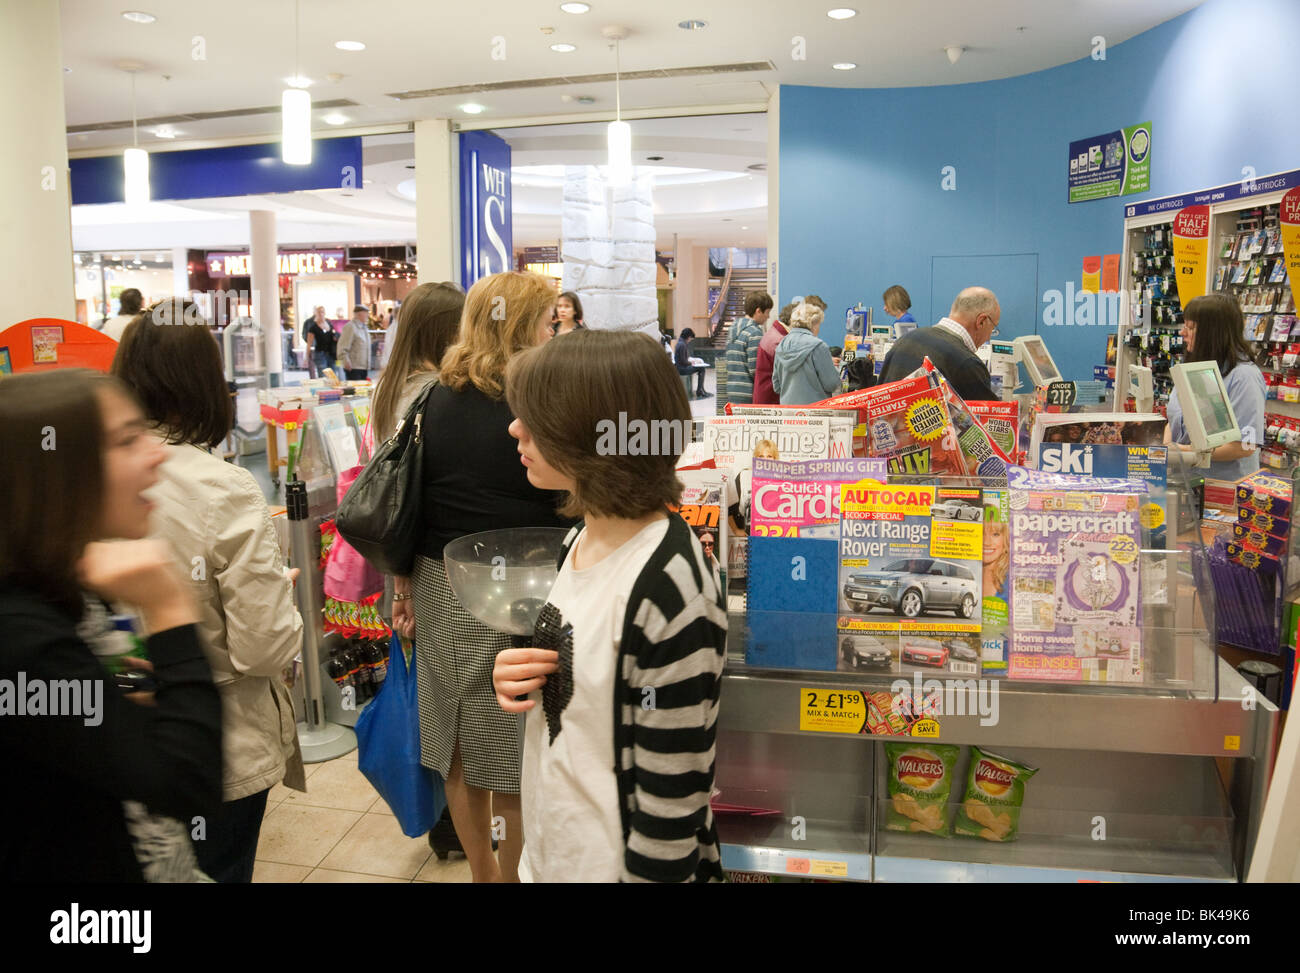 Shoppers queuing at the checkout, WH Smiths, Bluewater Shopping mall, Dartford Kent, UK - Stock Image